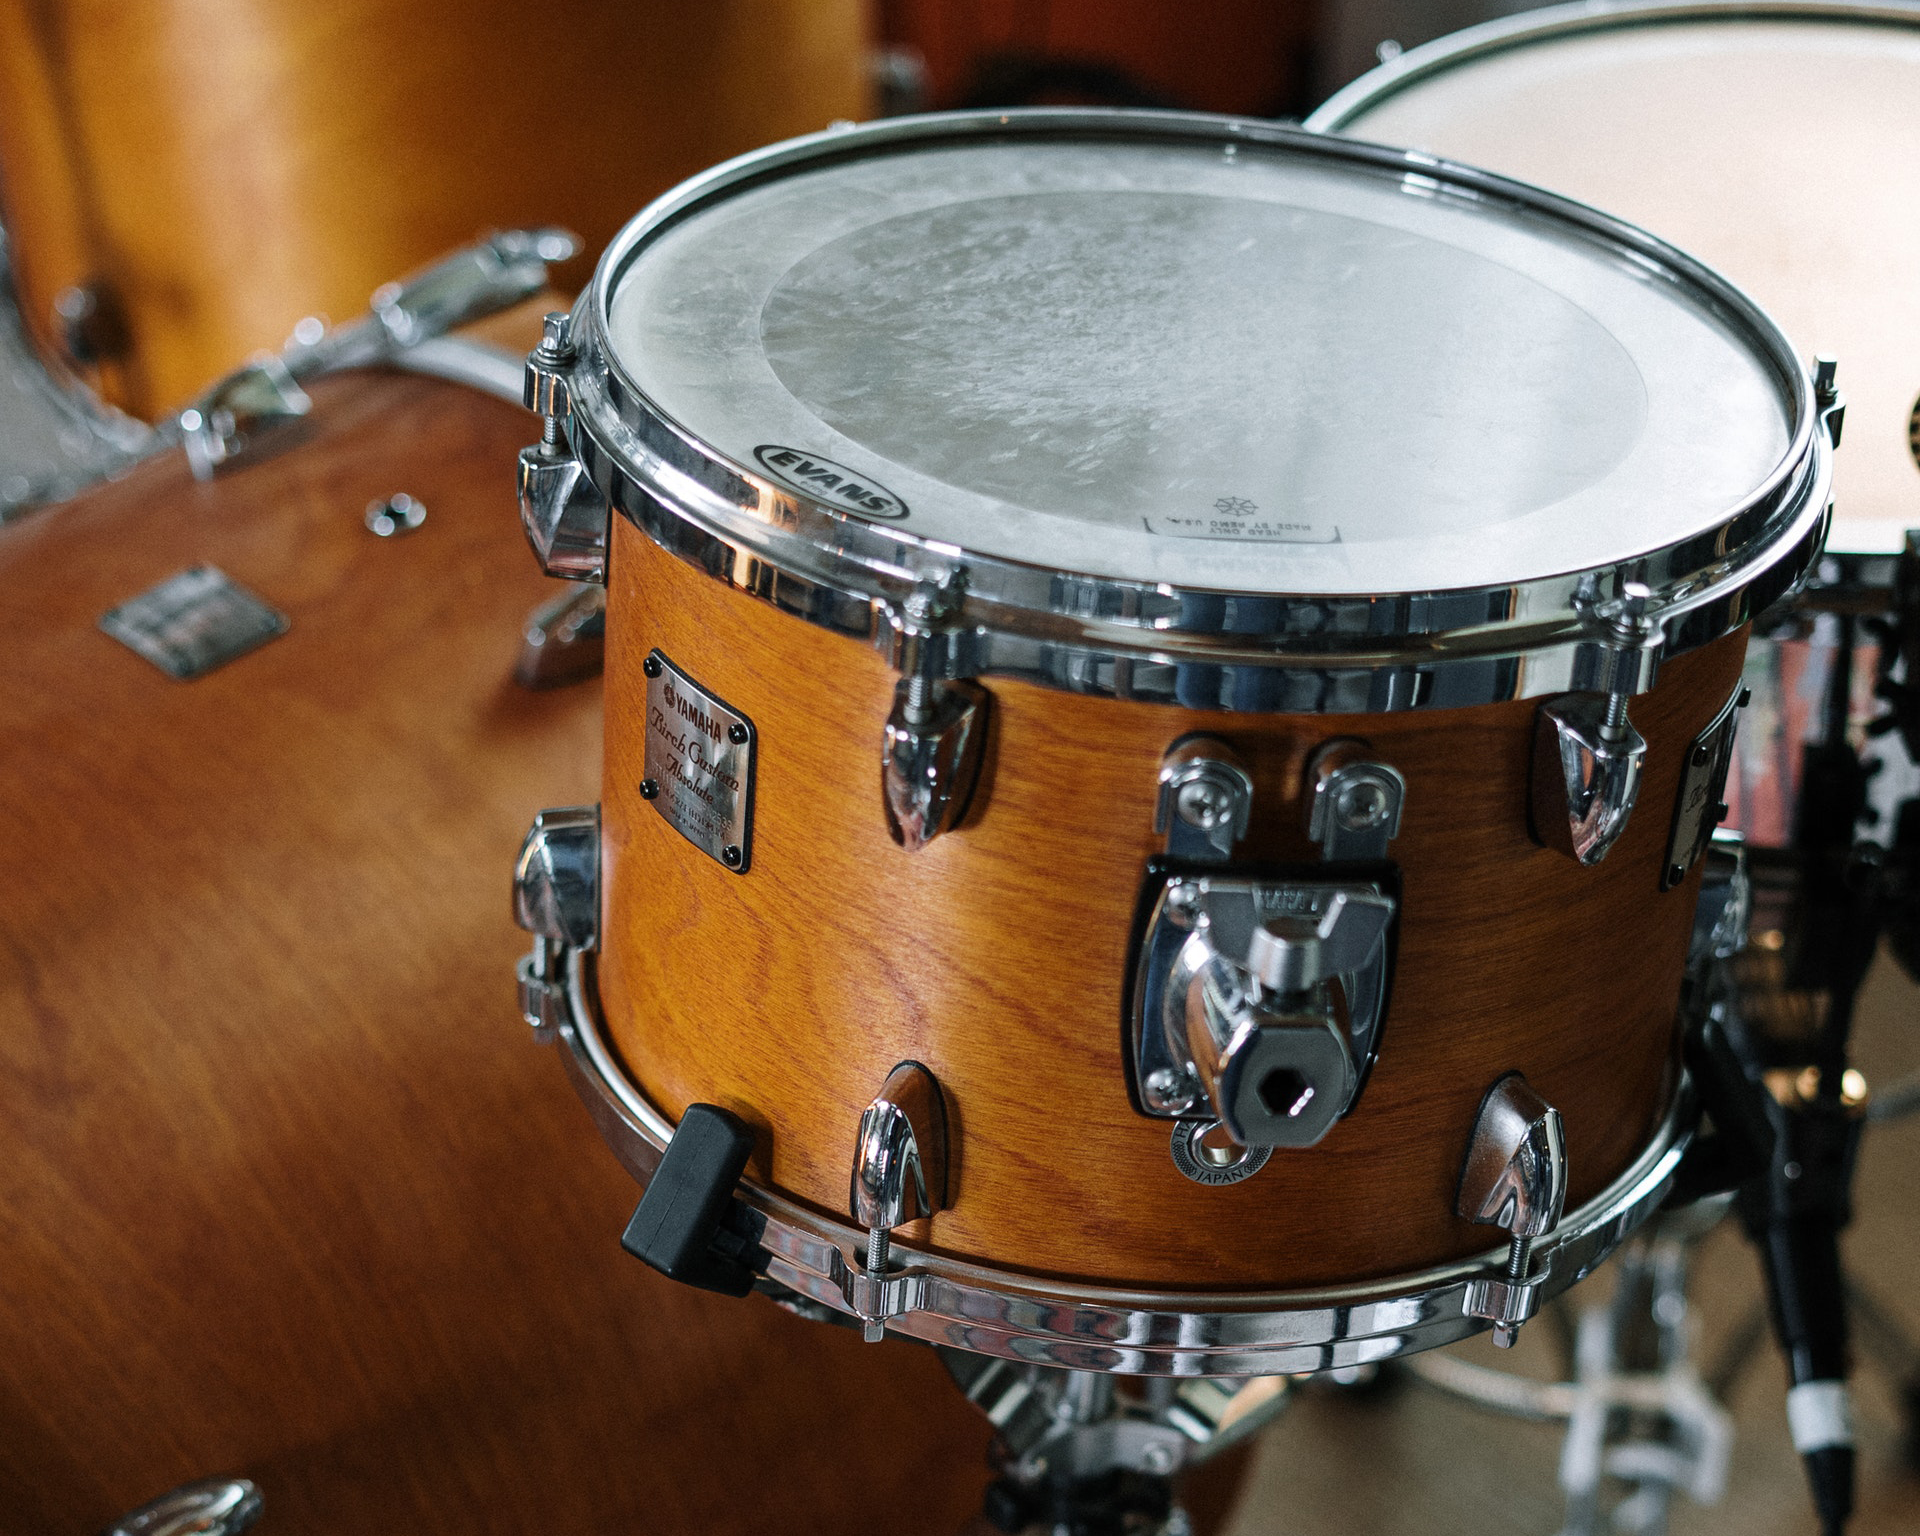 Buying Snare Drum? Follow These Essential Tips